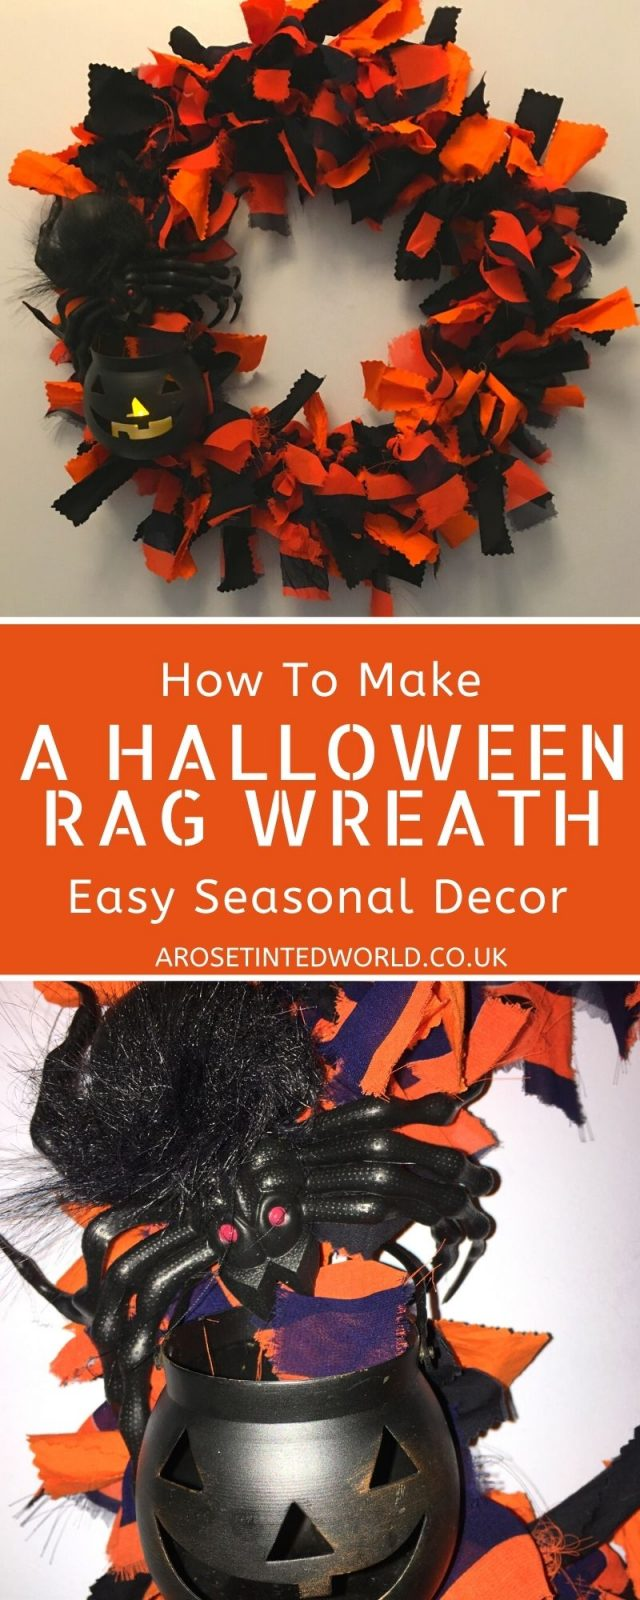 How To Make A Halloween Rag Wreath - make a quick, easy & effective door decoration following this simple tutorial. Perfect Fall craft project